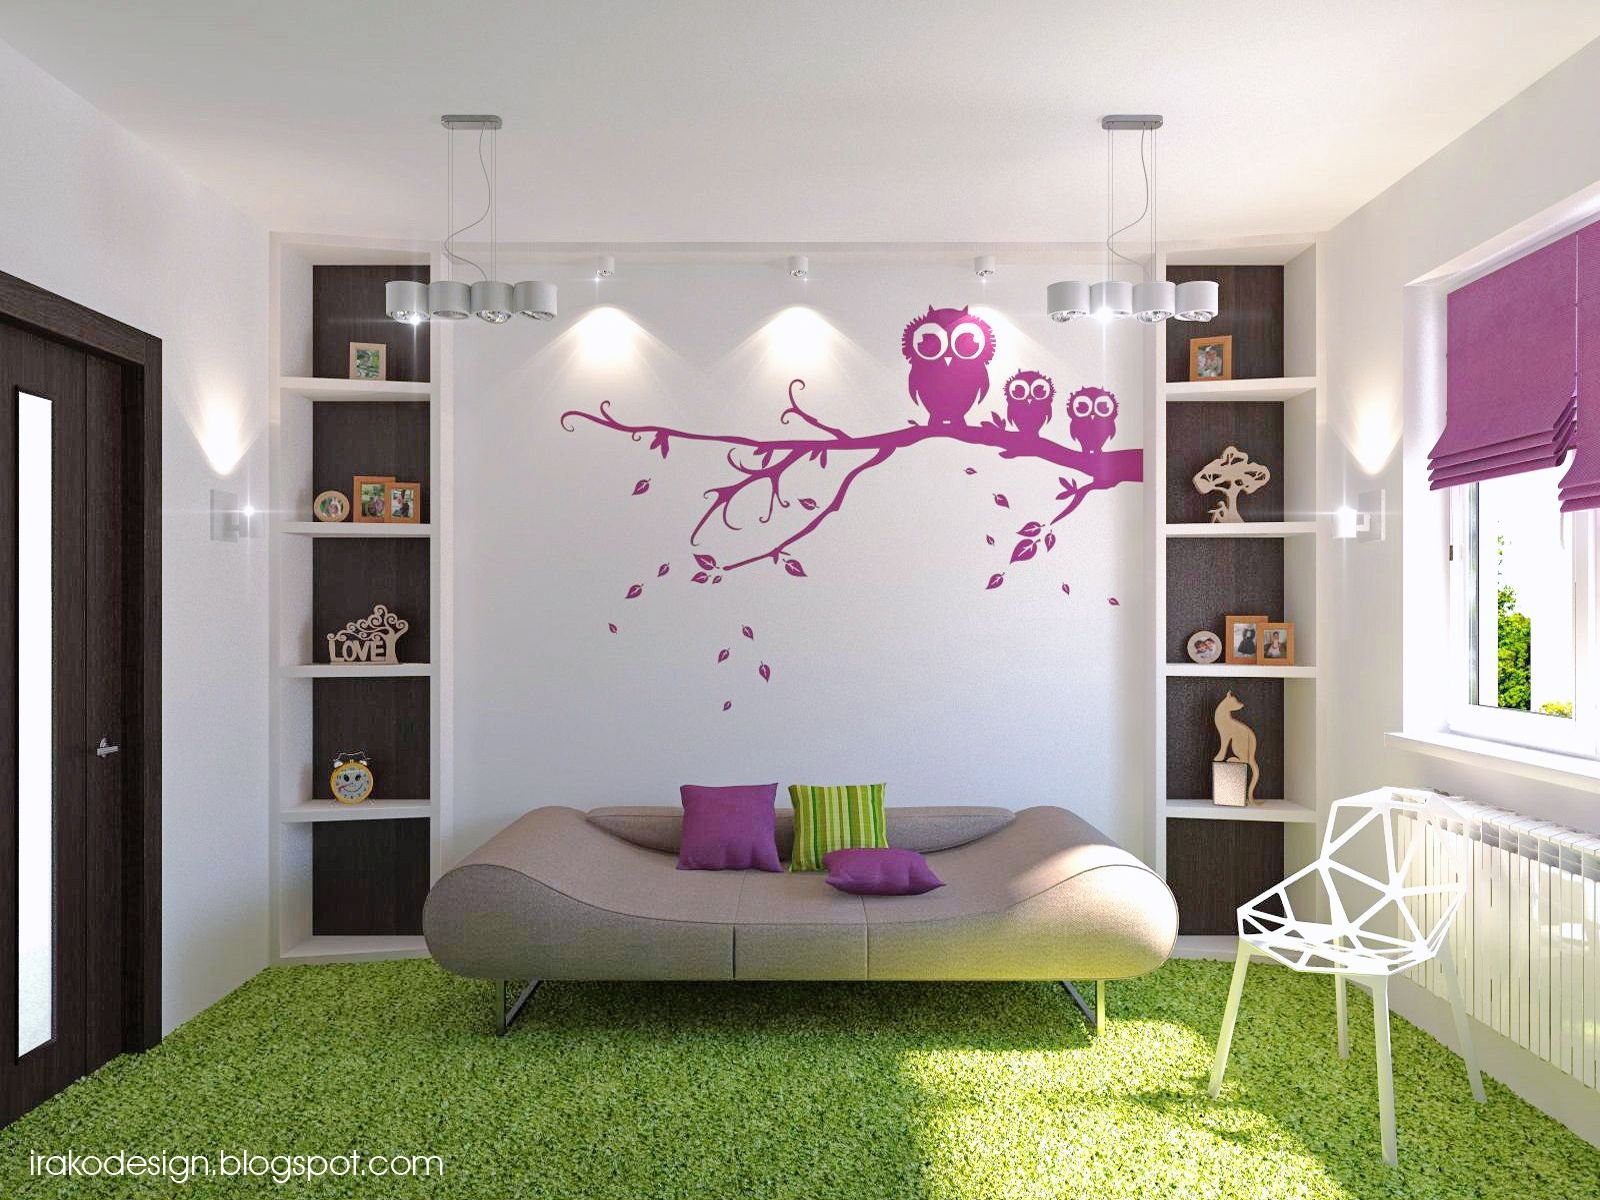 Bedrooms for girls green - Above 4 Via Irako Design Girl Bedroom Eas As Little Beautiful Girls Bedroom Beautiful Tween Girl Room